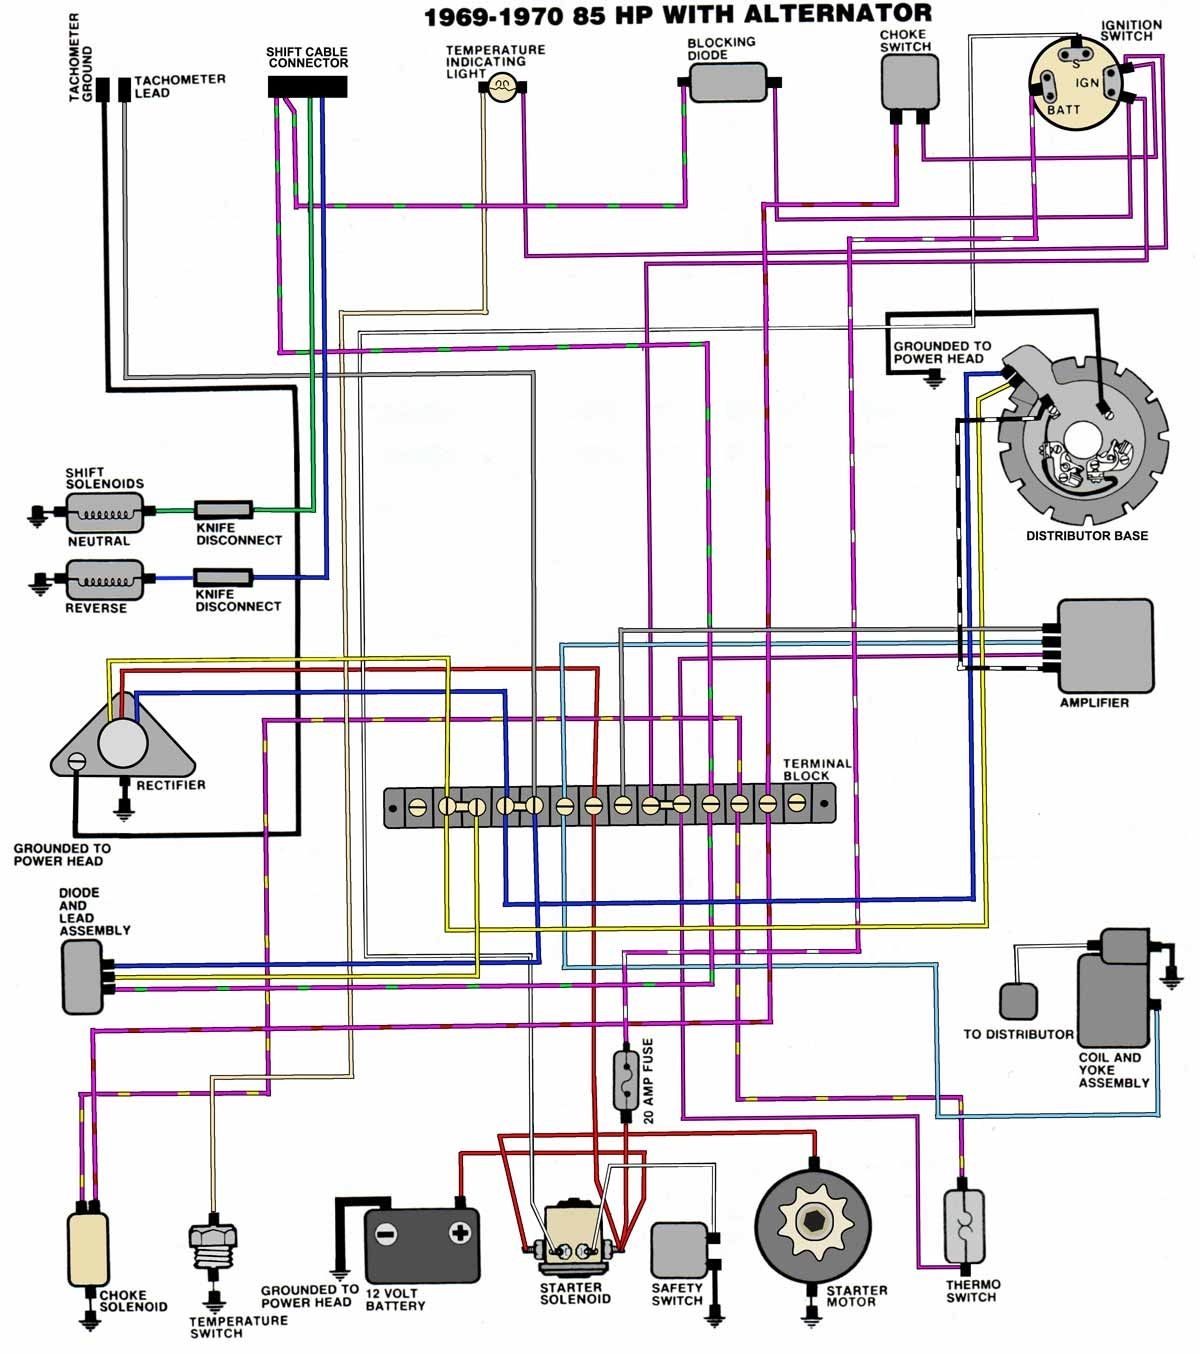 50 amp wiring diagram